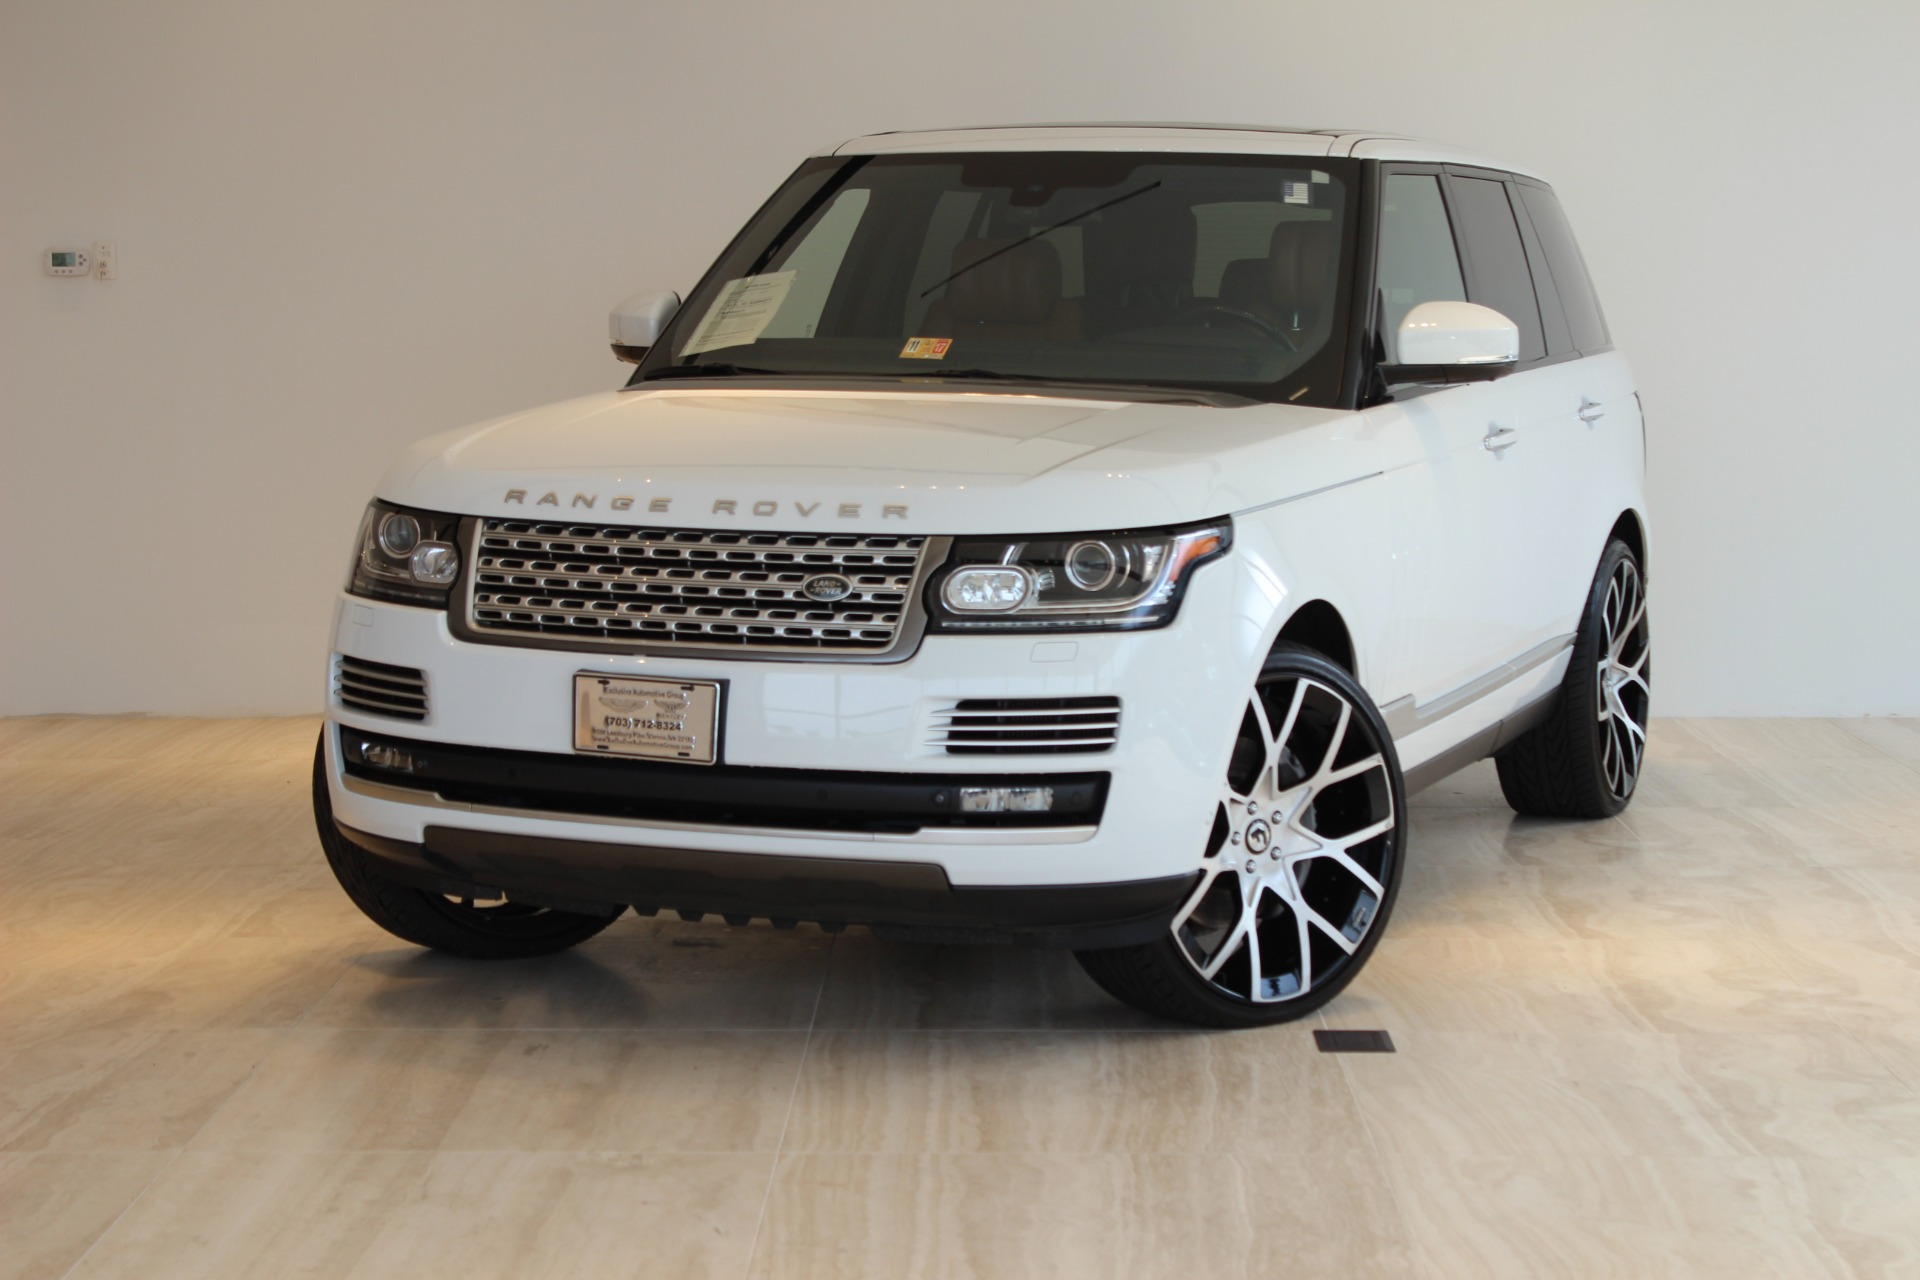 2014 Land Rover Range Rover Autobiography Stock 6NC C for